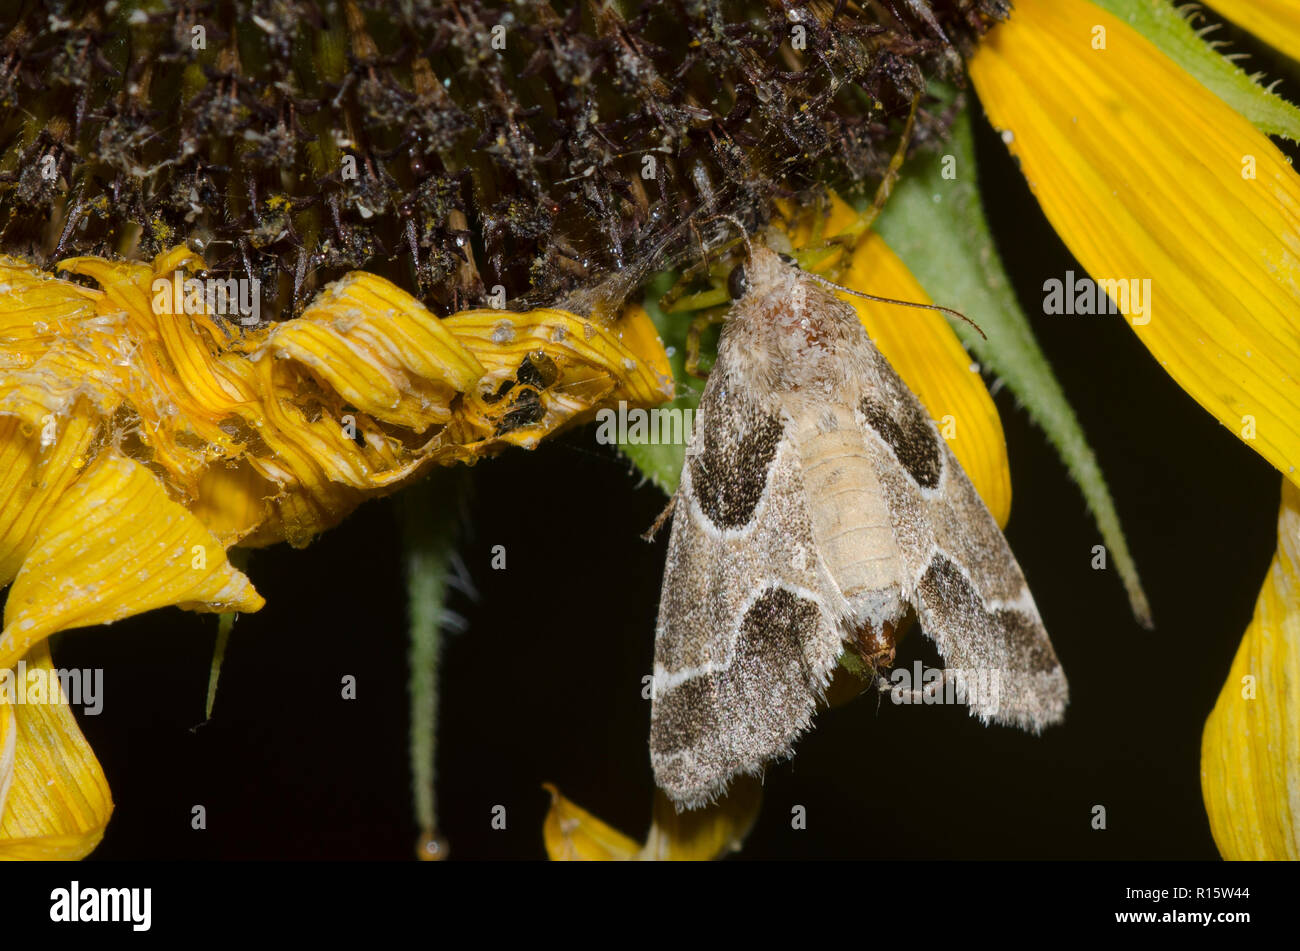 Crab Spider, Family Thomisidae, with Ragweed Flower Moth, Schinia rivulosa, on sunflower, Helianthus sp. Stock Photo